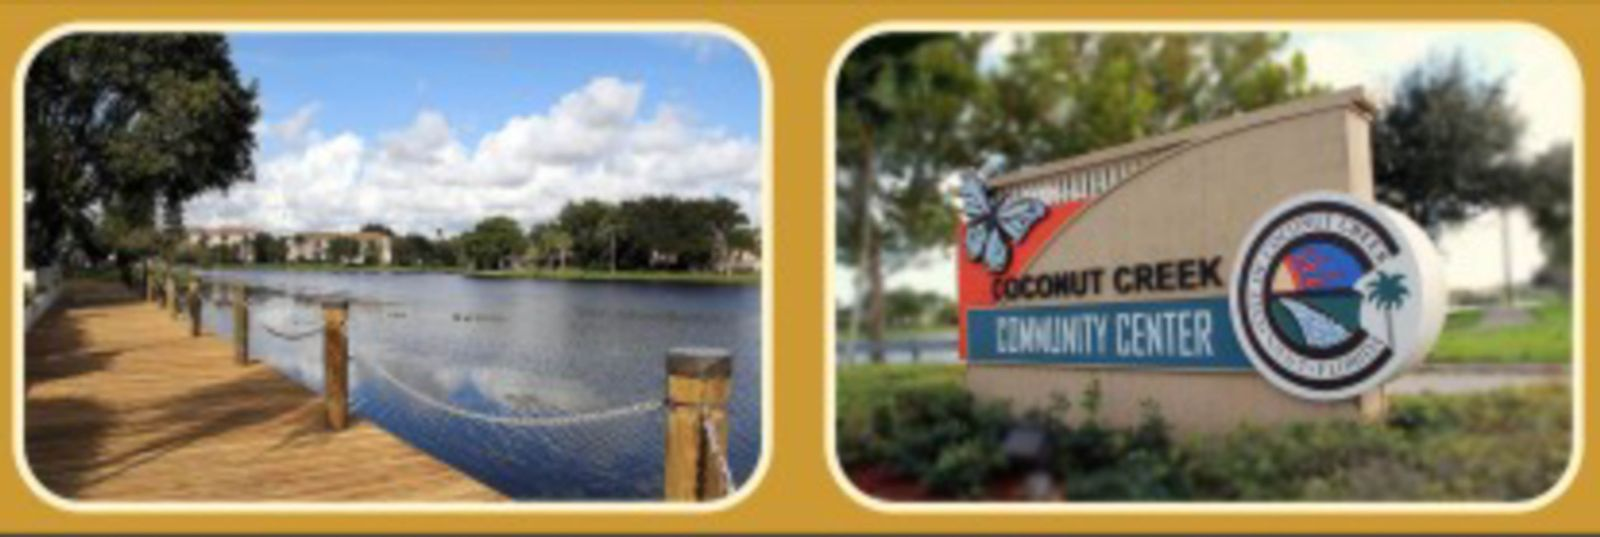 Coconut creek criminal attorney if you need defense from criminal charges in coconut creek